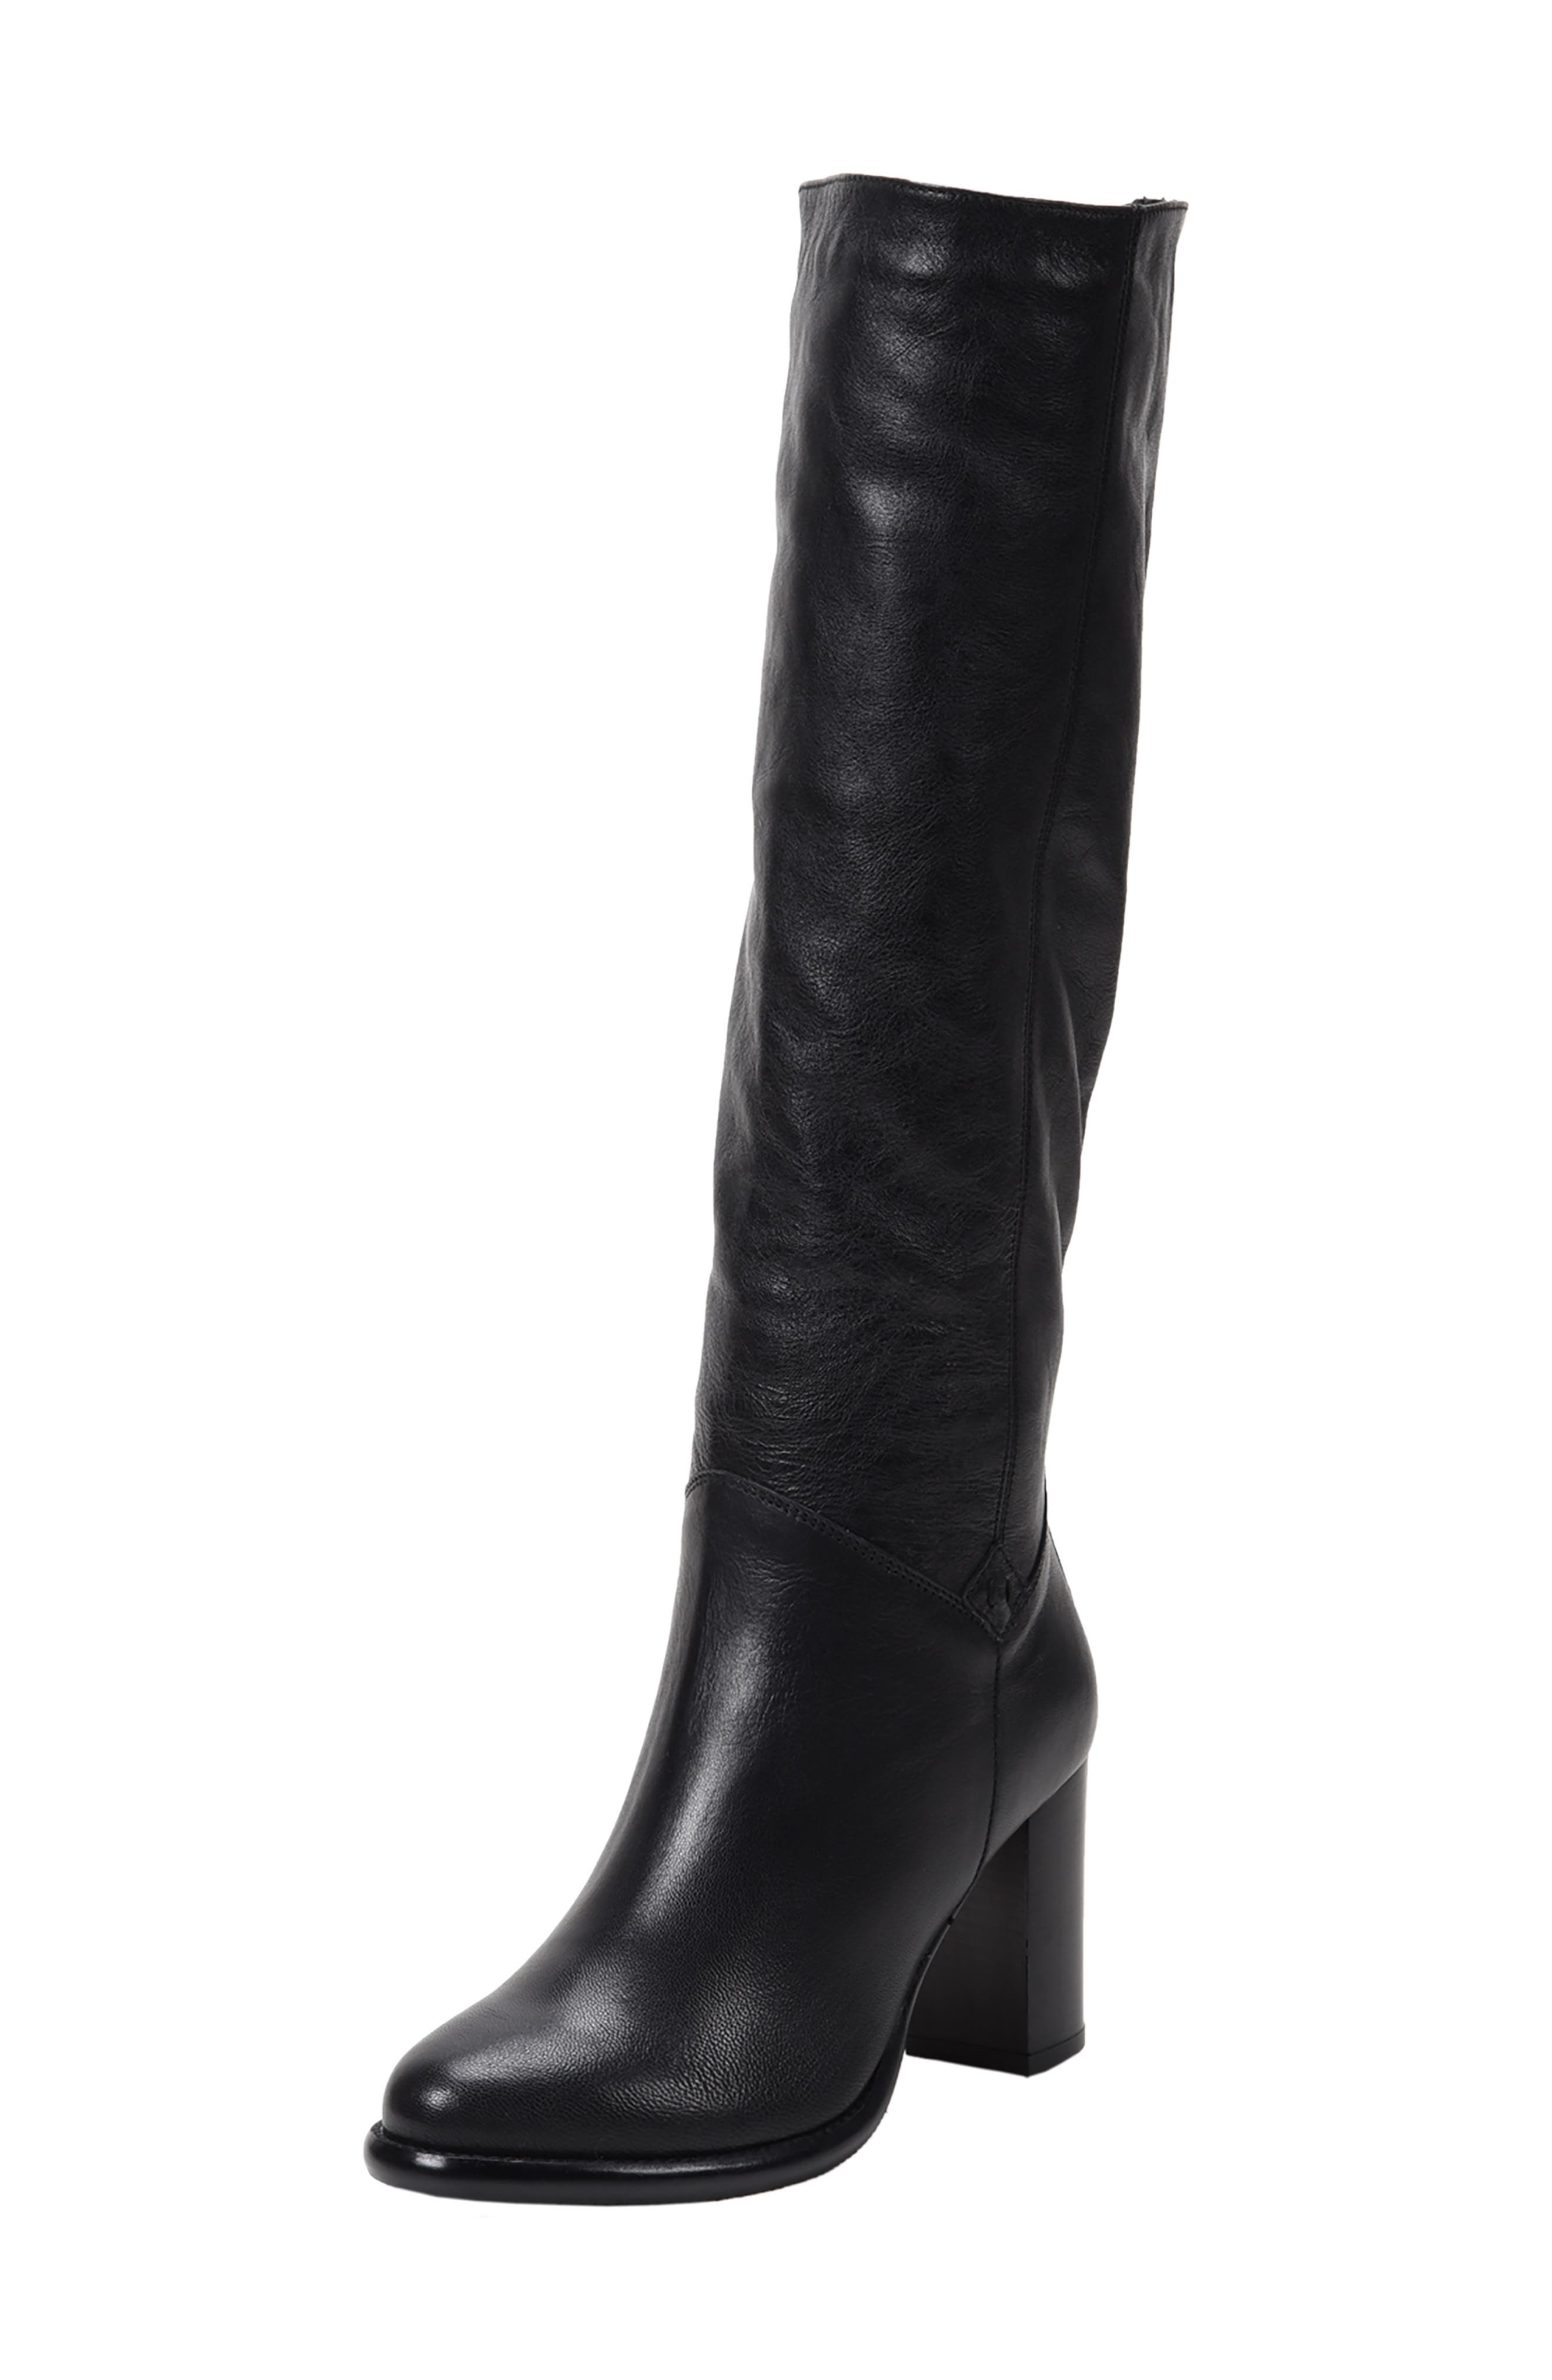 Michela SP Waterproof Genuine Shearling Lined Boot,                         Main,                         color, BLACK METALLIC LEATHER